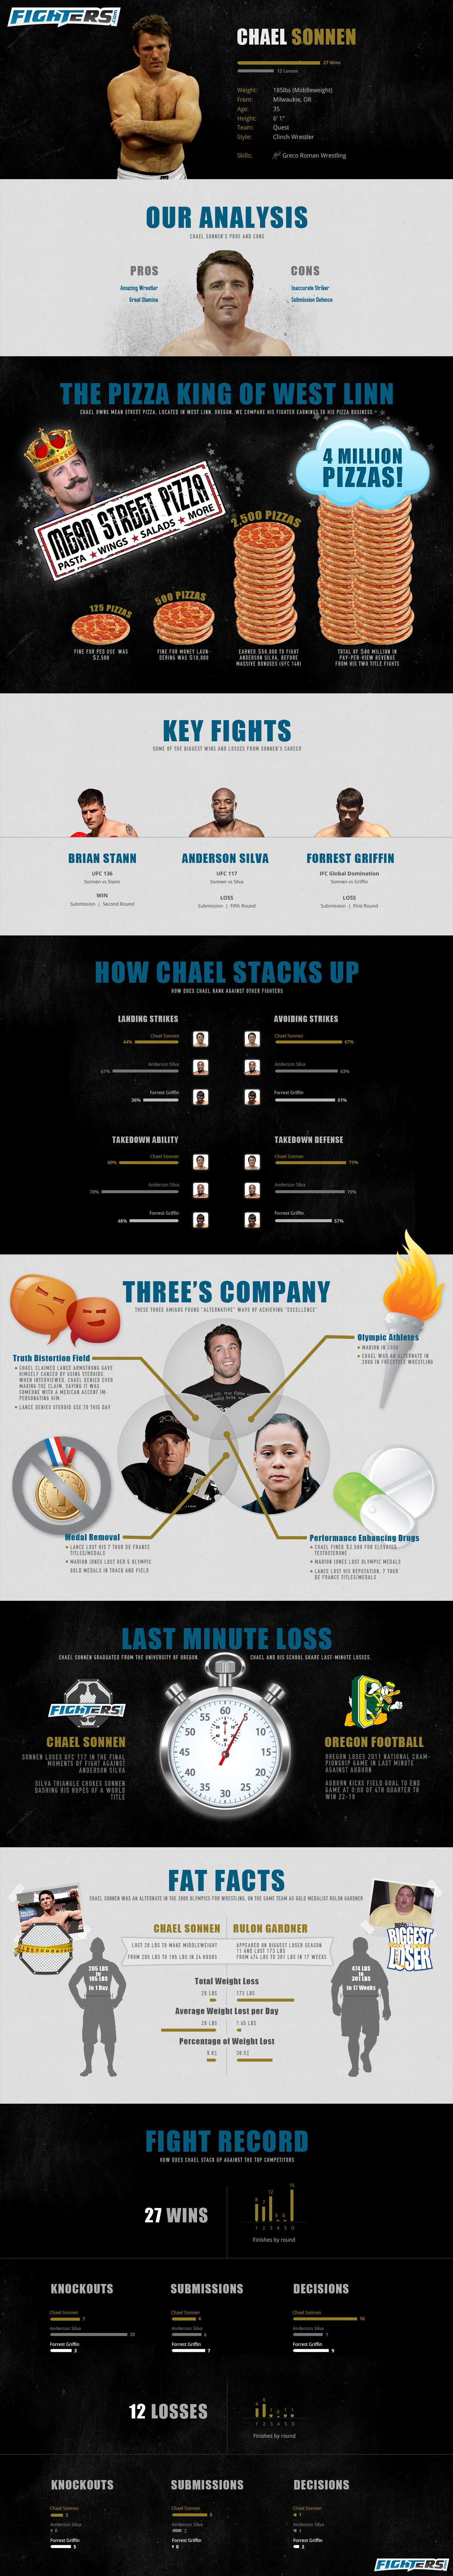 fighters-infographic-chael-sonnen-full.jpg